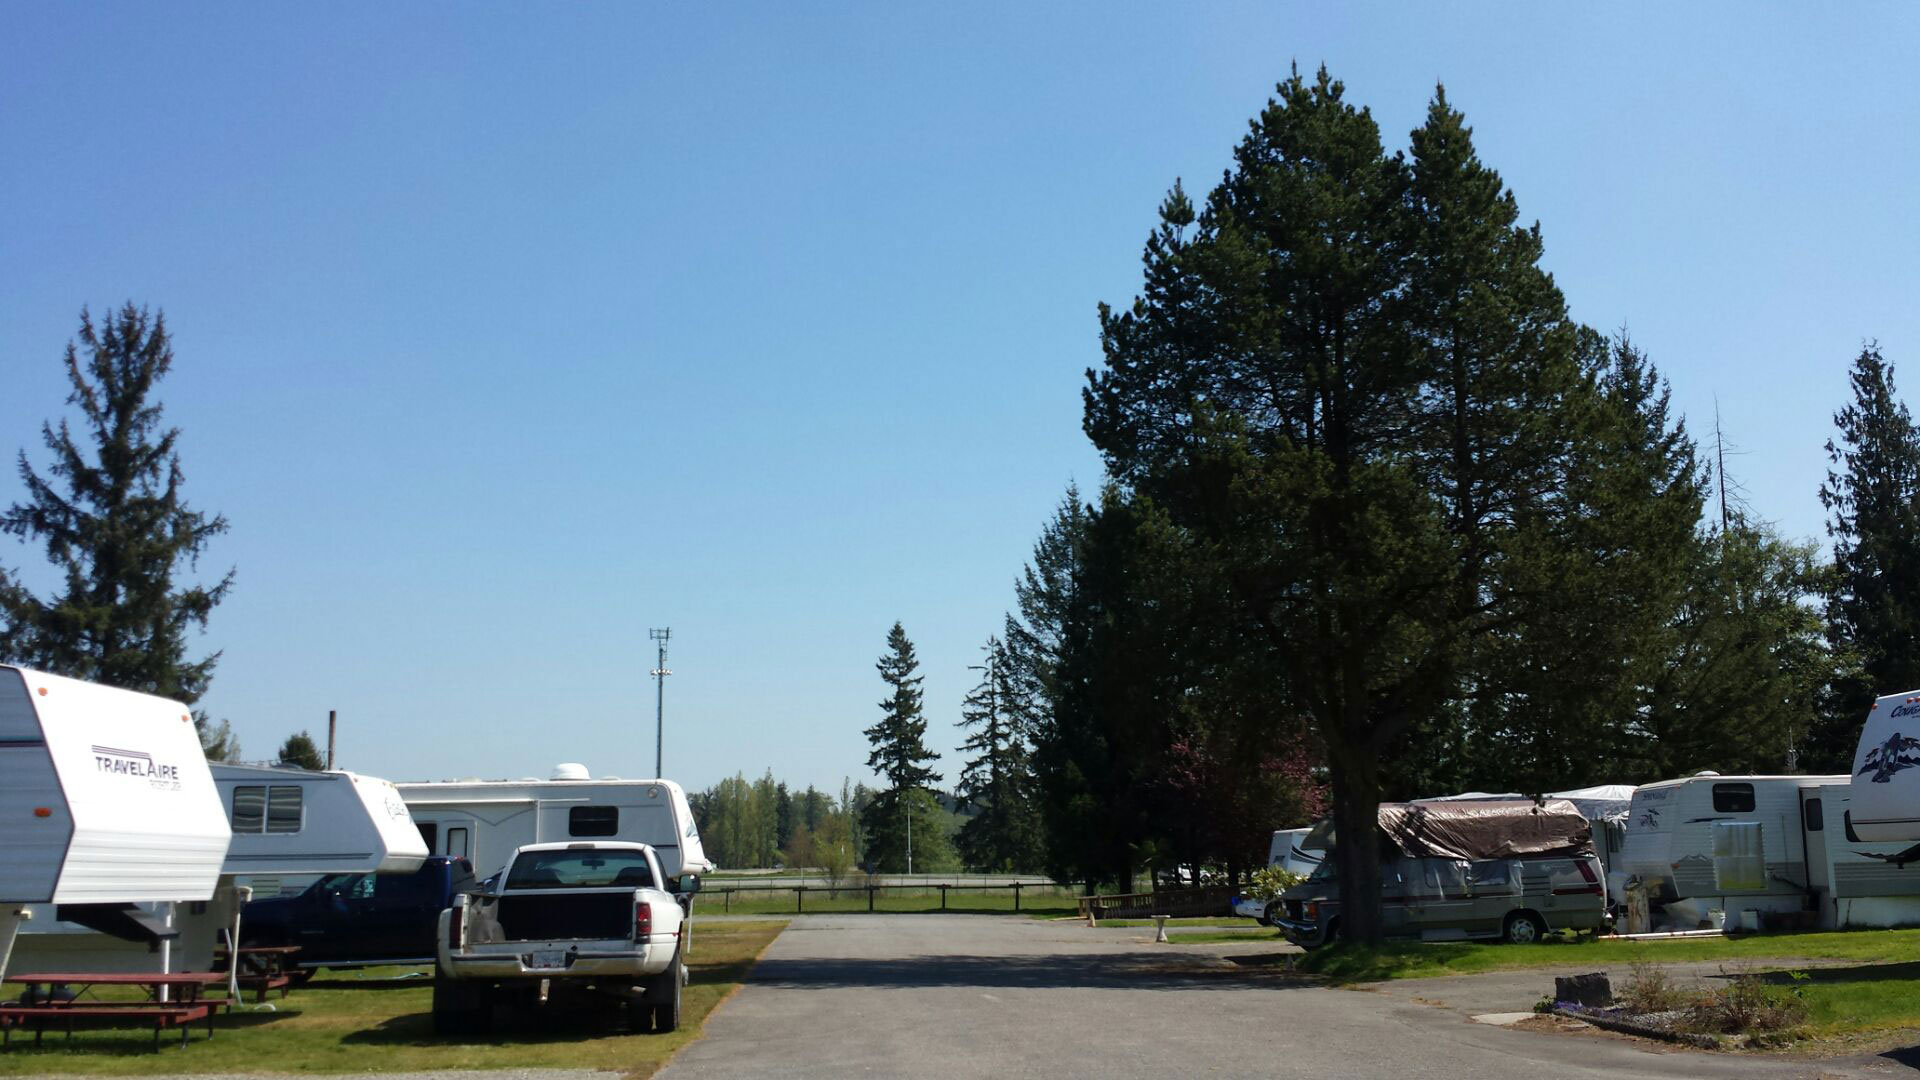 Mobile Home Parks Livingstone RV Park Formerly Campsite Trailer Is Located At 23141 72nd Ave In Langley BC Between